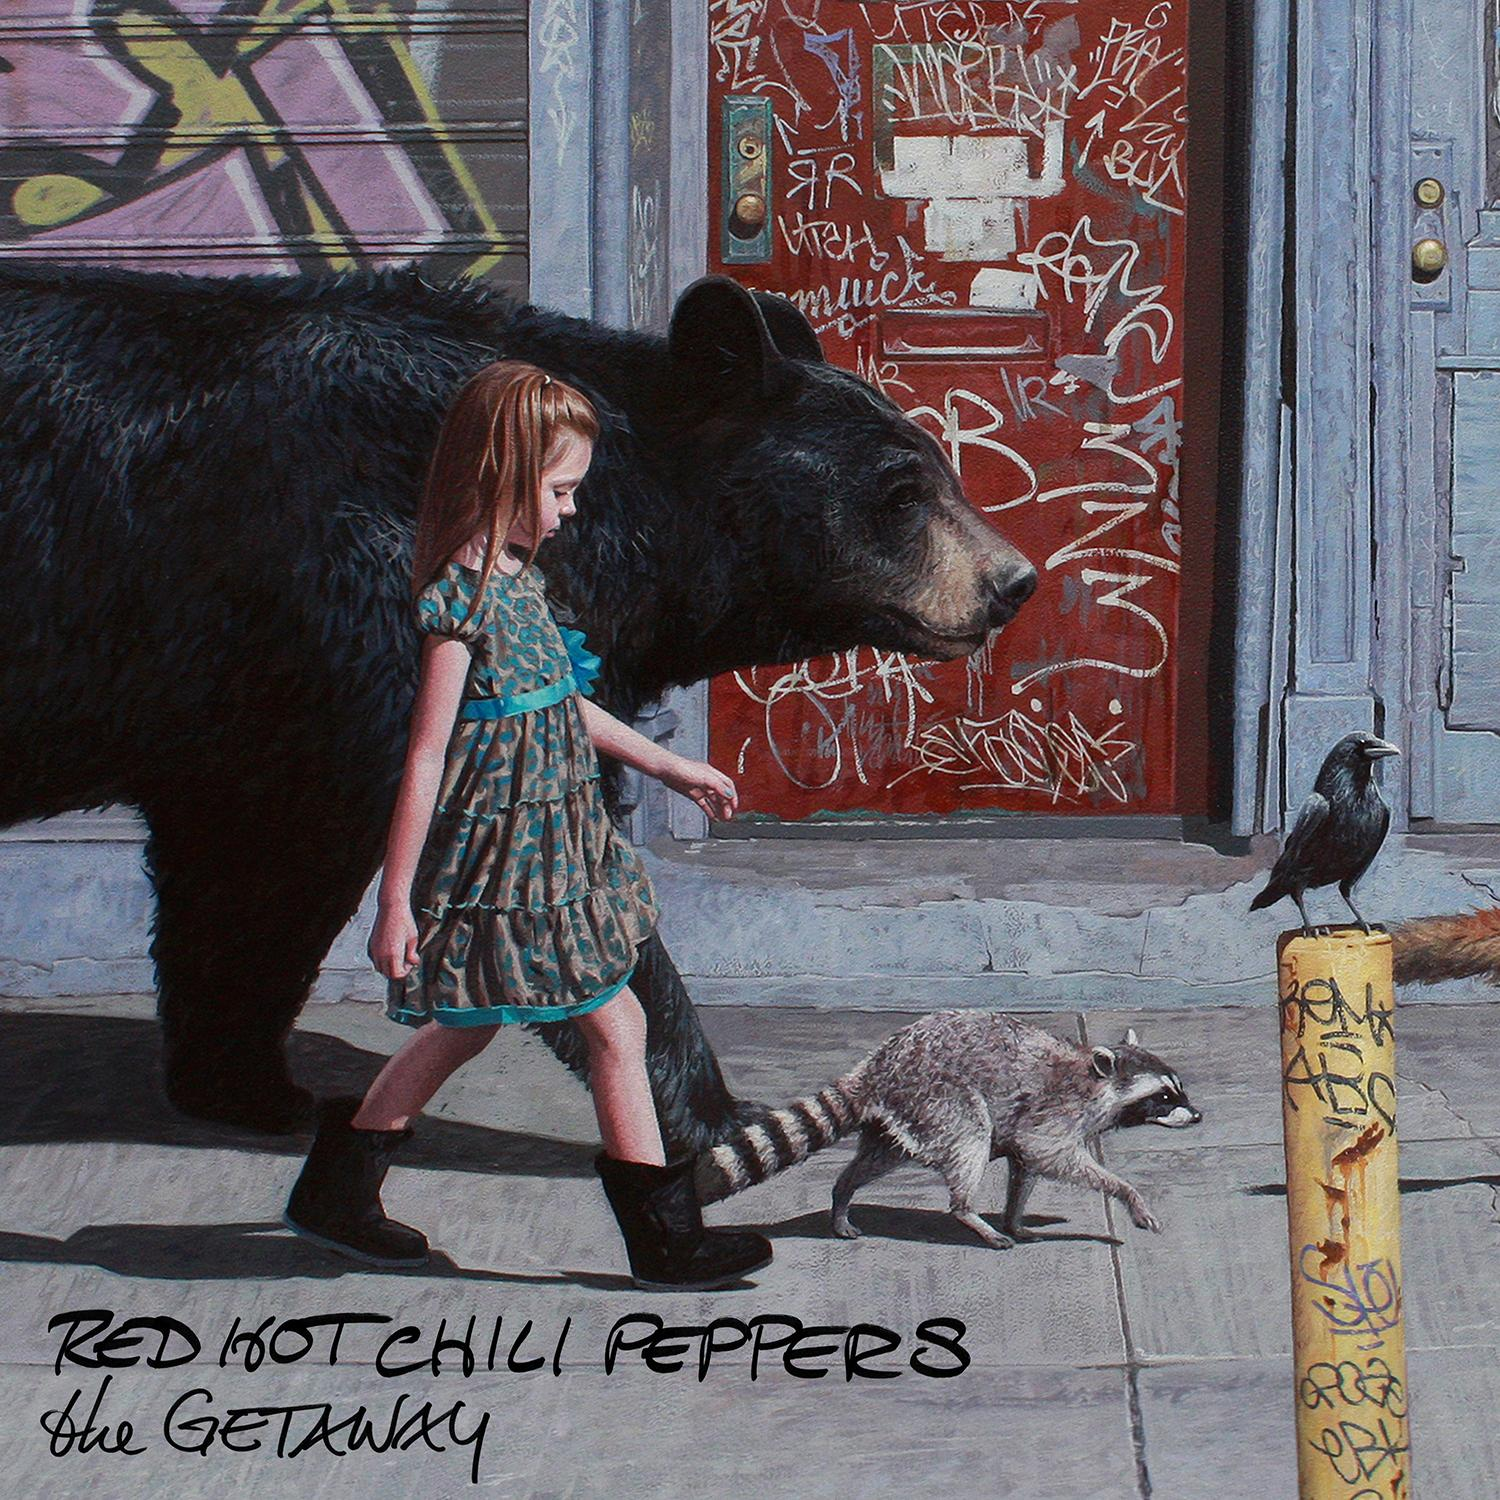 Рецензия на альбом | Red Hot Chili Peppers - The Getaway (2016)